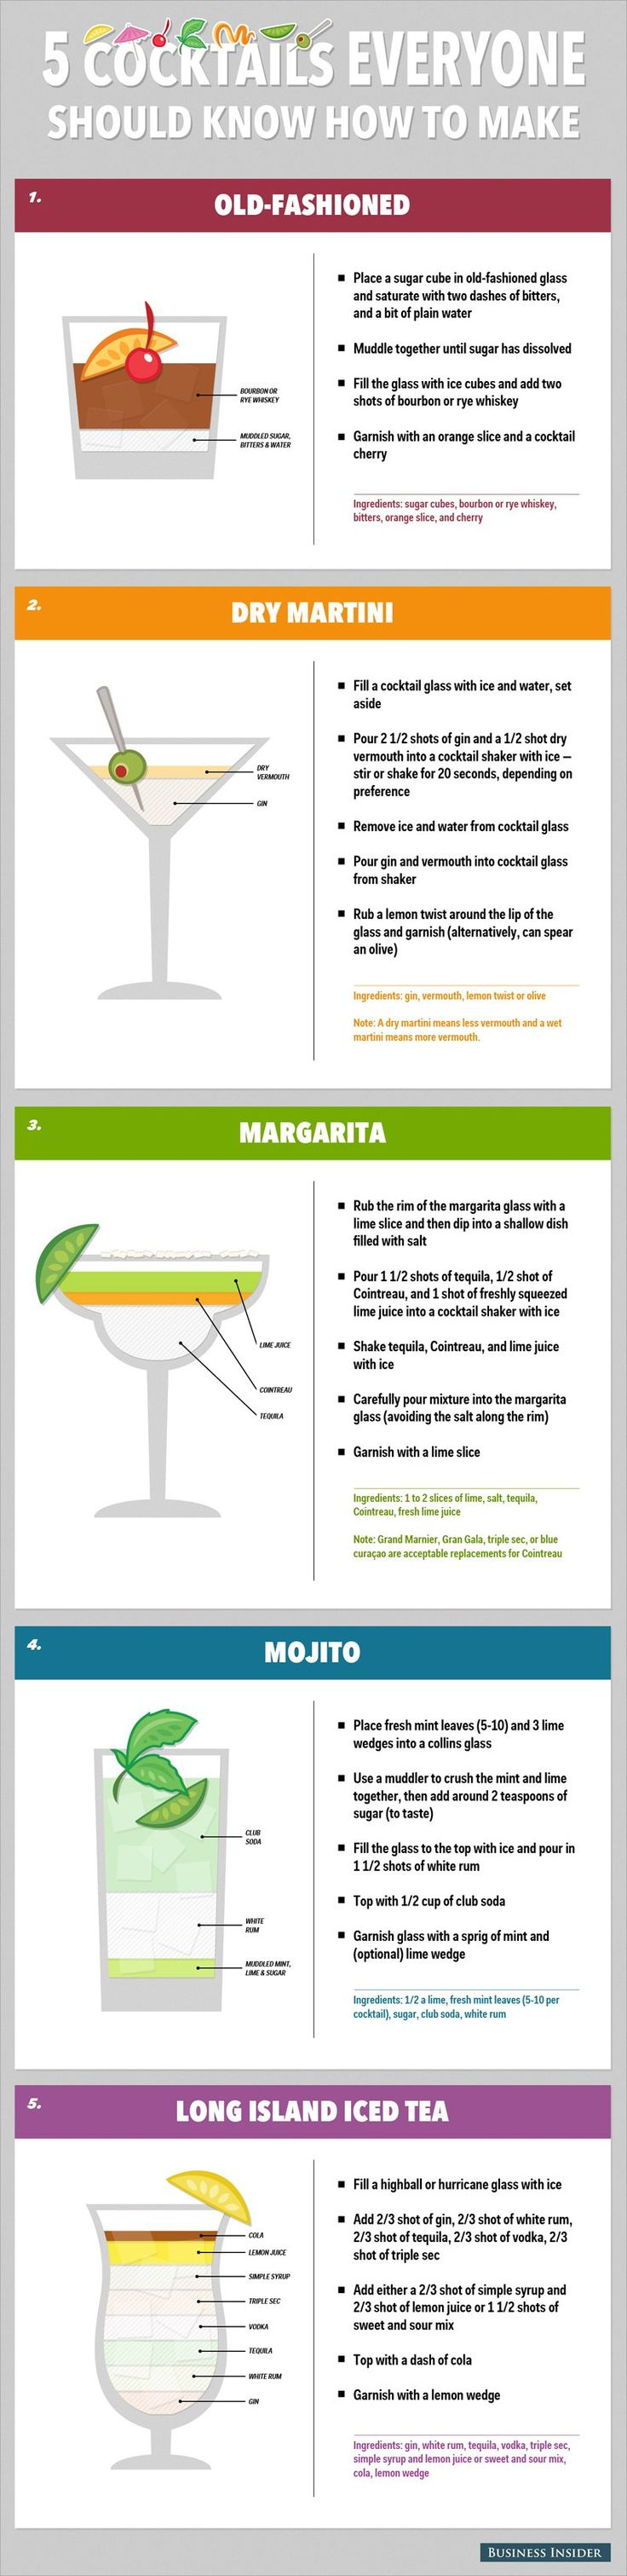 The 5 Classic Cocktails That Everyone Should Know How To Make Read more: http://www.businessinsider.com/classic-cocktail-recipes-2014-4#ixzz2zA7gPLTG